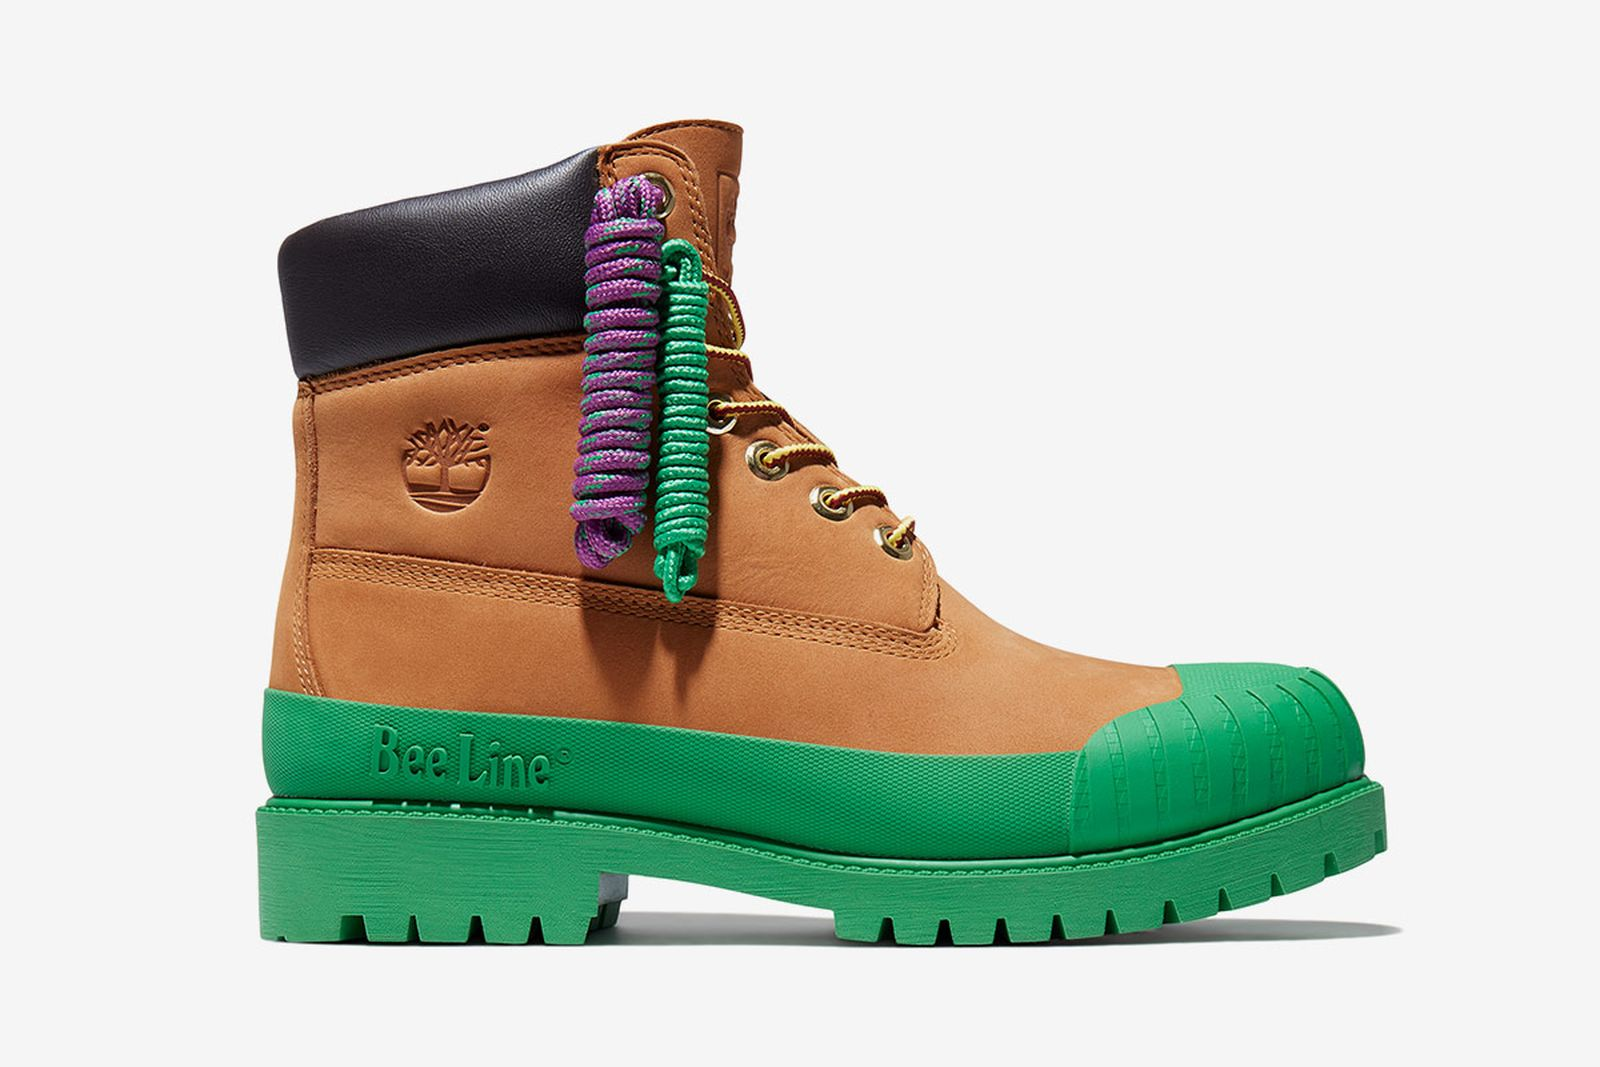 bee-line-billionaire-boys-club-timberland-boot-release-date-price-001